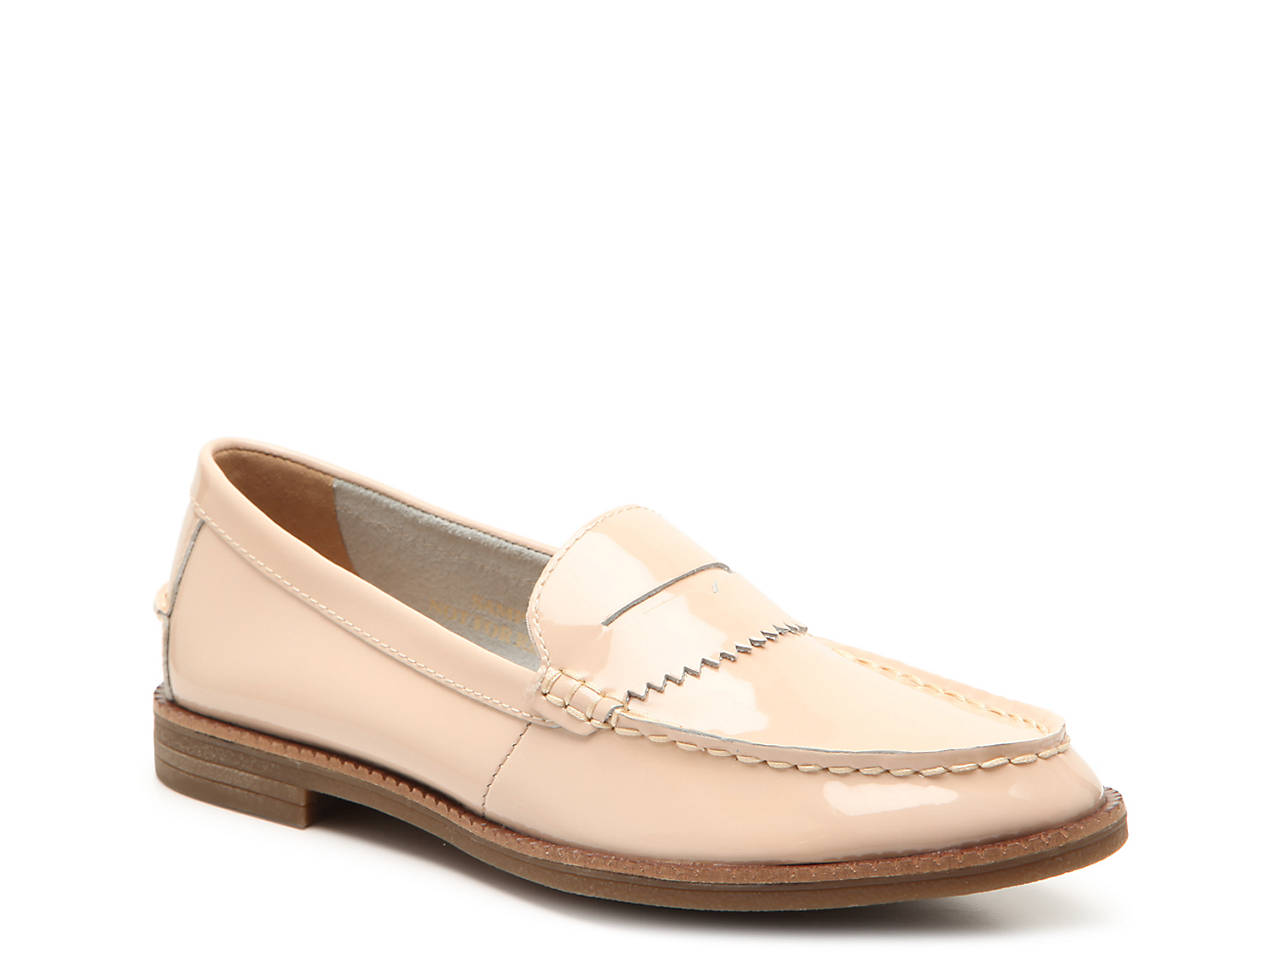 4896a64654e Sperry Top-Sider Waypoint Penny Loafer Women s Shoes